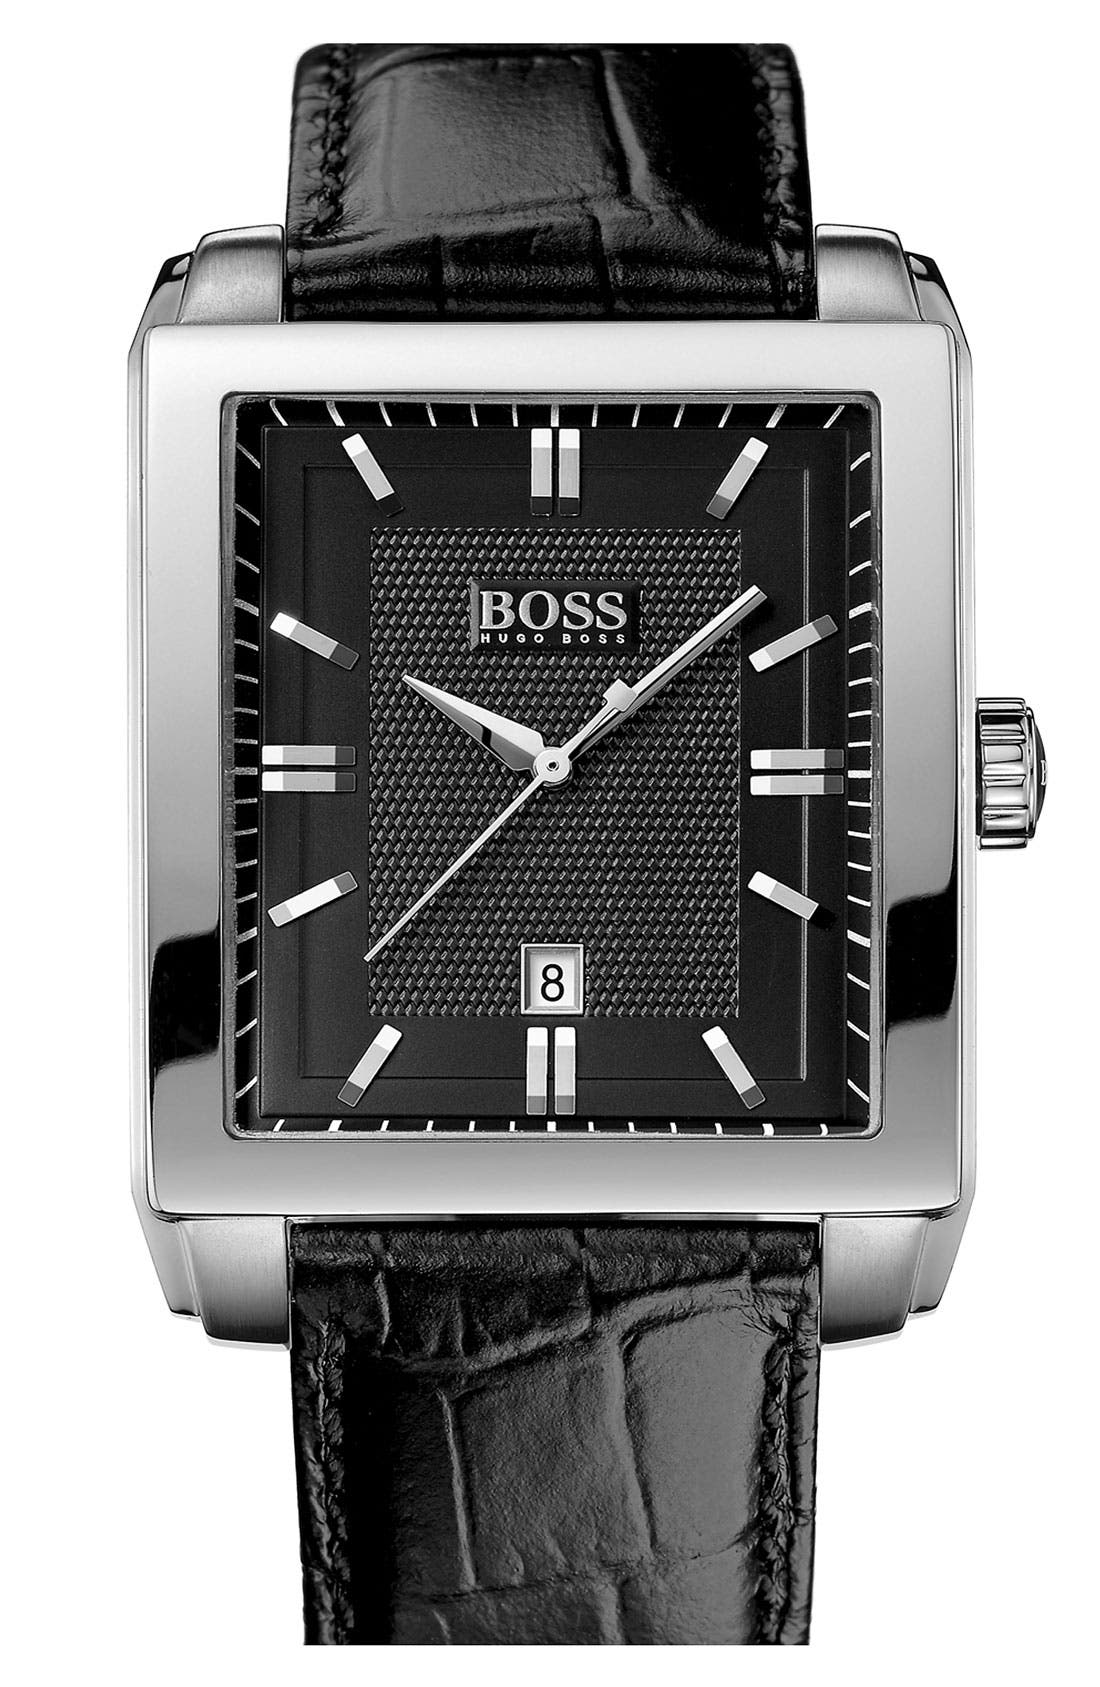 Main Image - BOSS HUGO BOSS Rectangular Leather Strap Watch, 35mm x 40mm